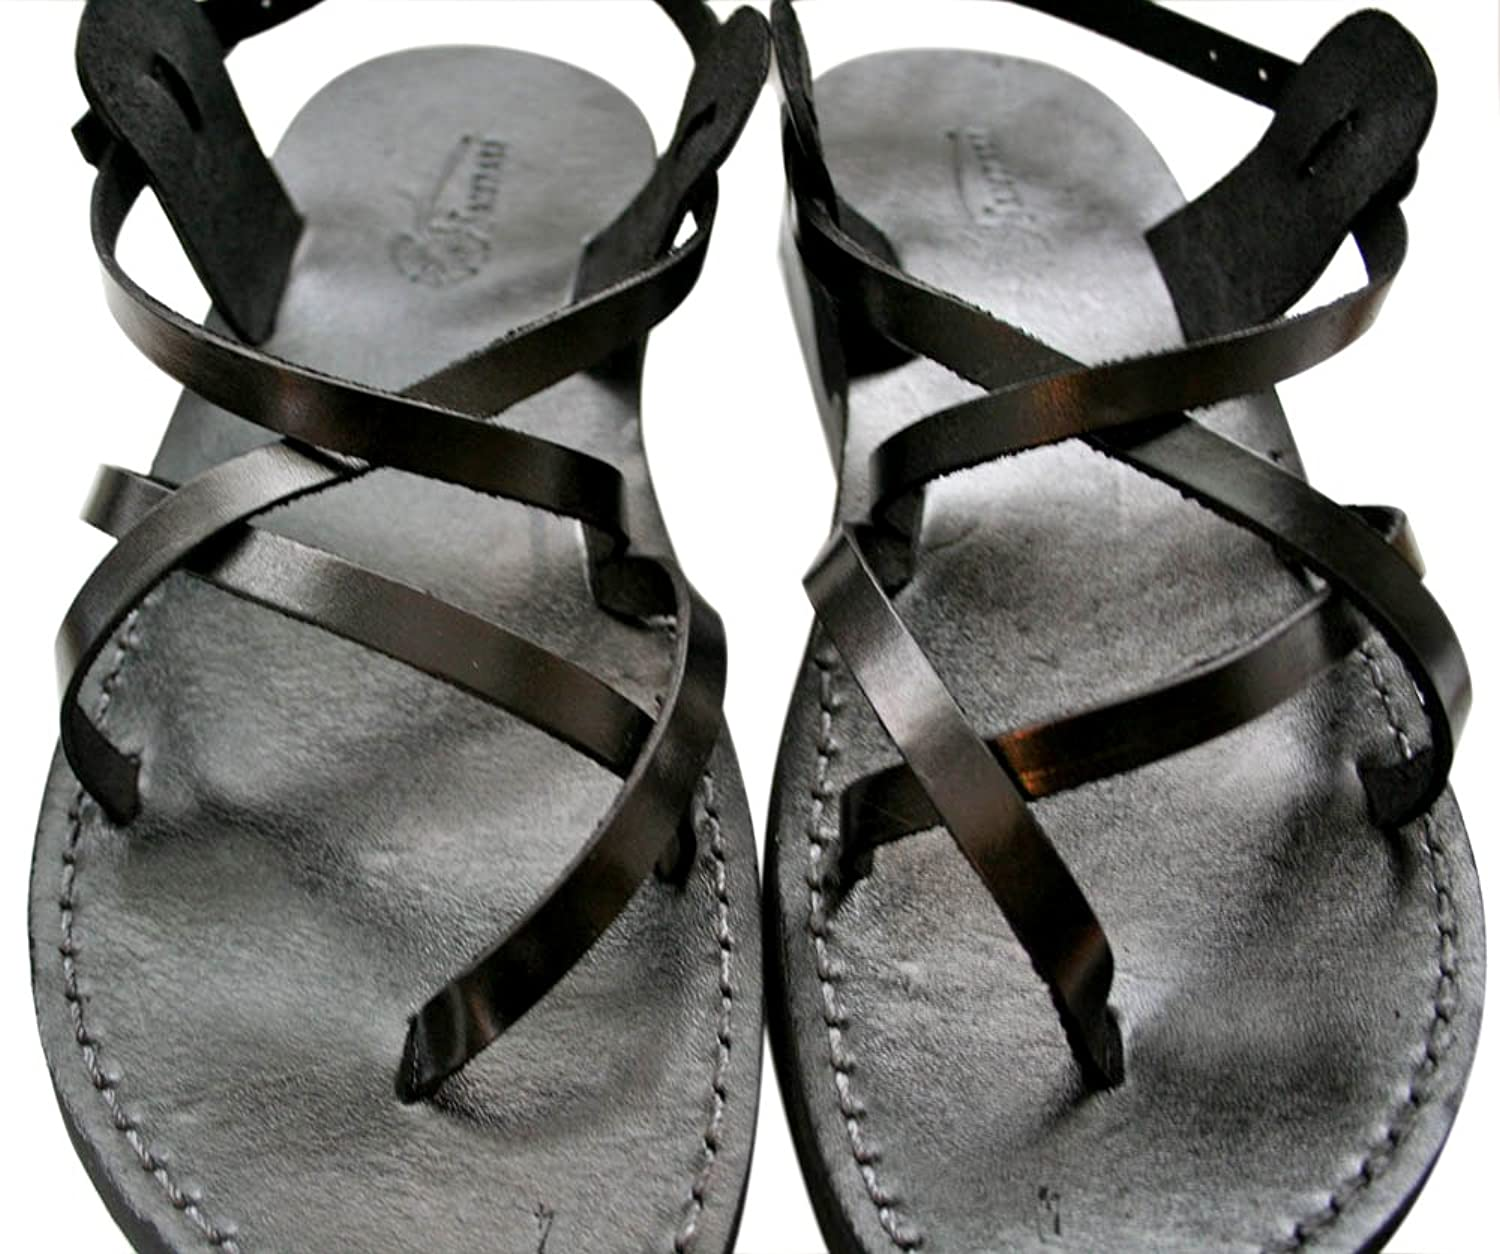 Black Triple Unisex Leather Sandals / Genuine Handmade Leather Holy Land Biblical Jesus Sandals